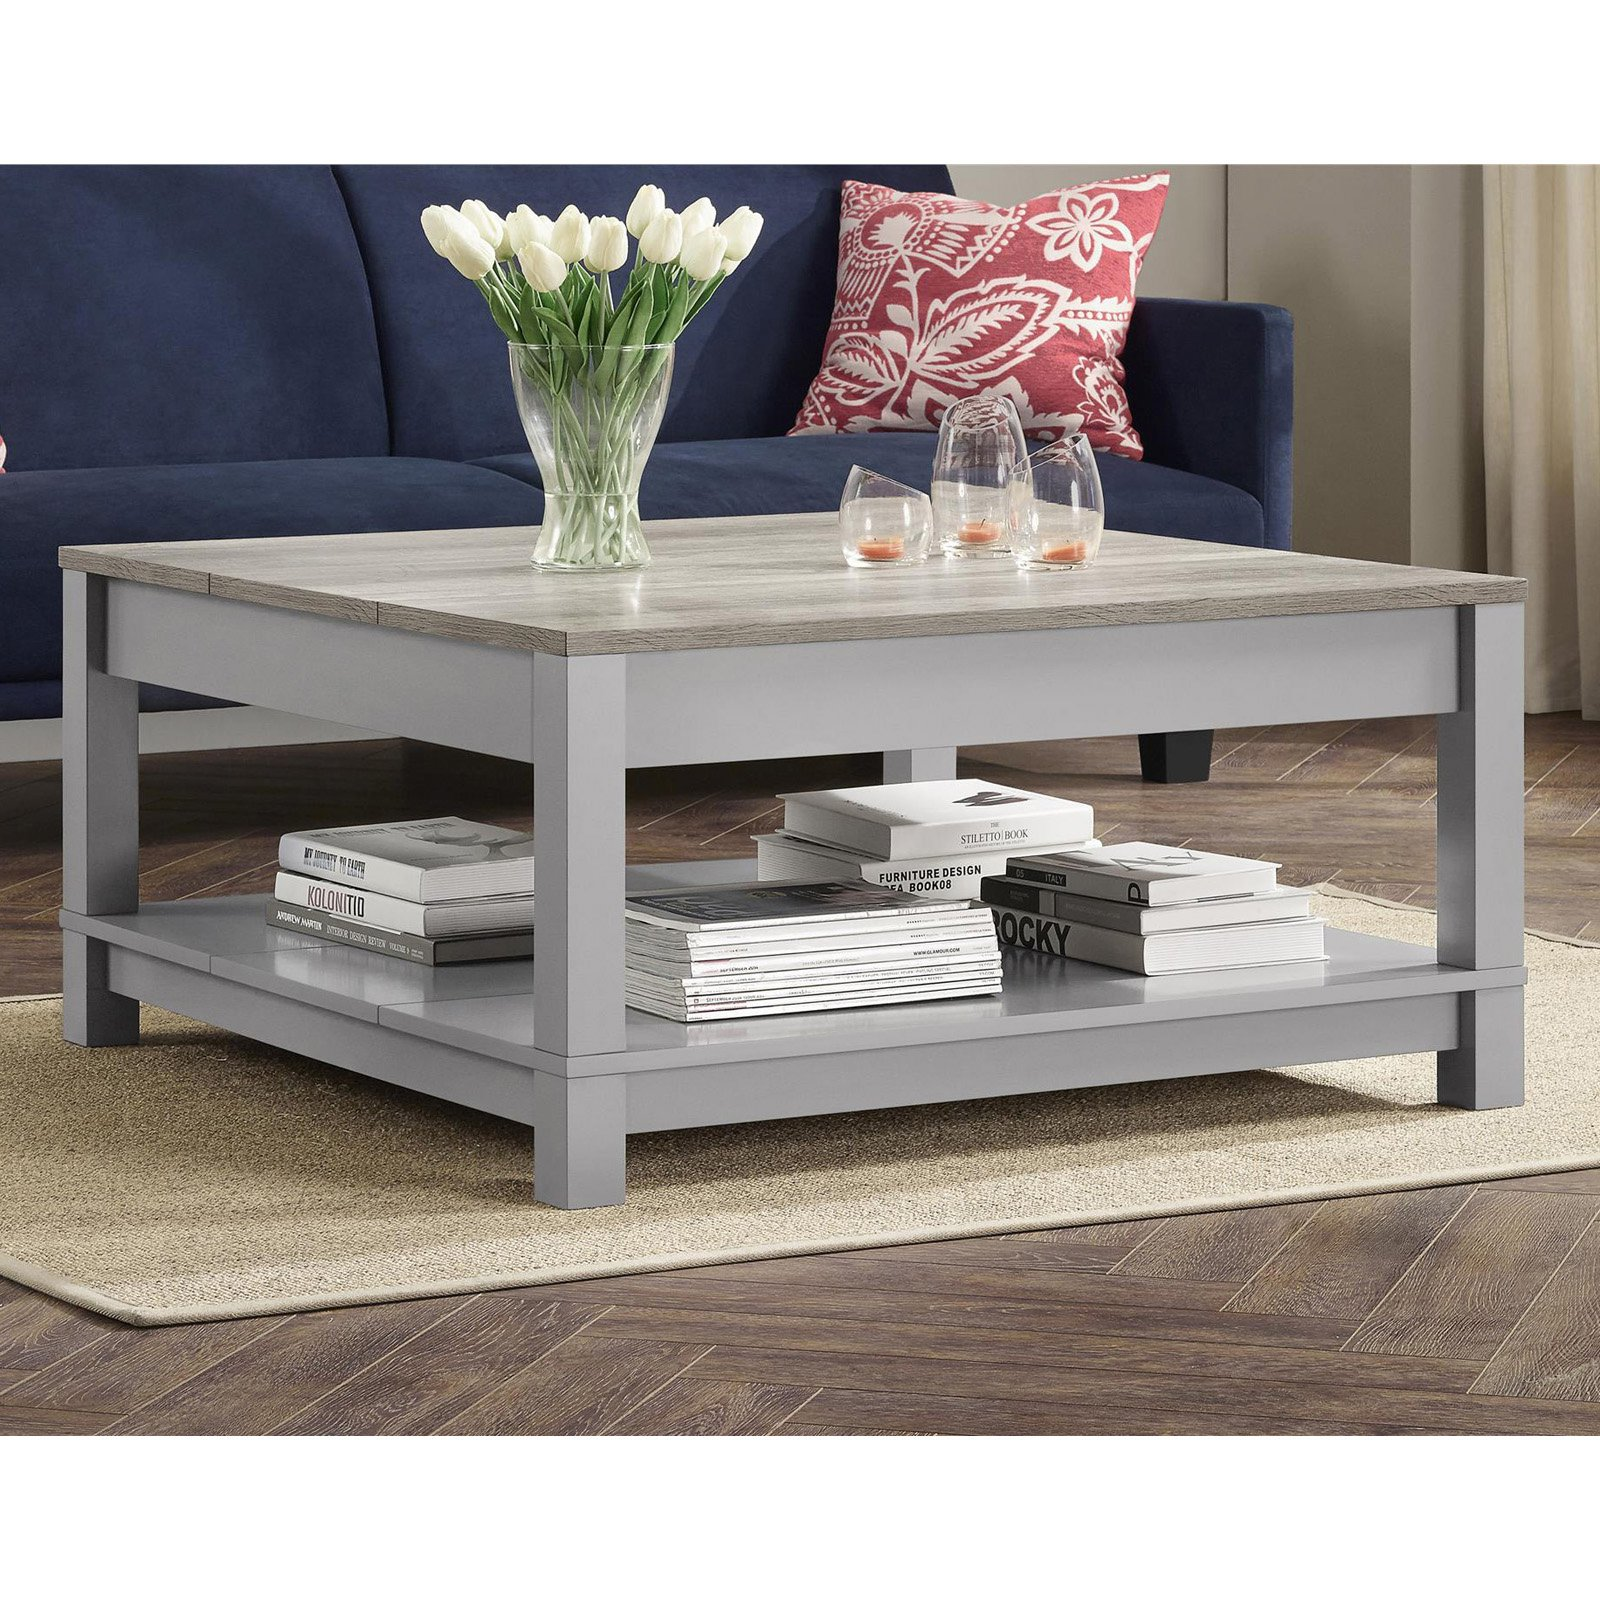 Better homes and gardens langley bay coffee table multiple colors walmart com